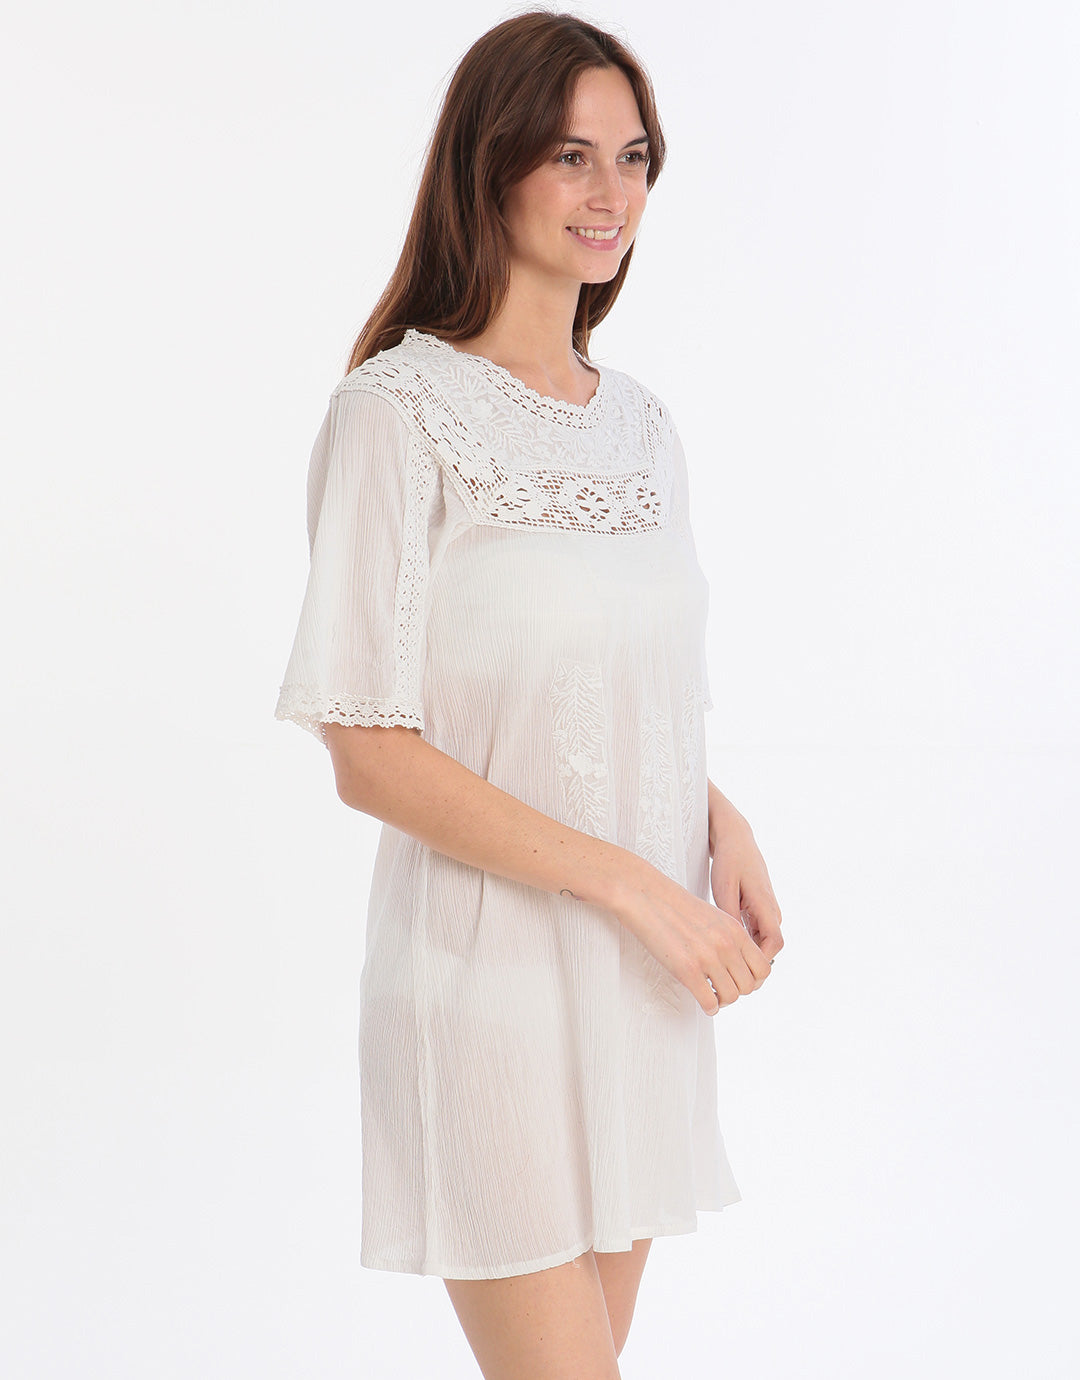 Iconique Beachwear Kaftan - White